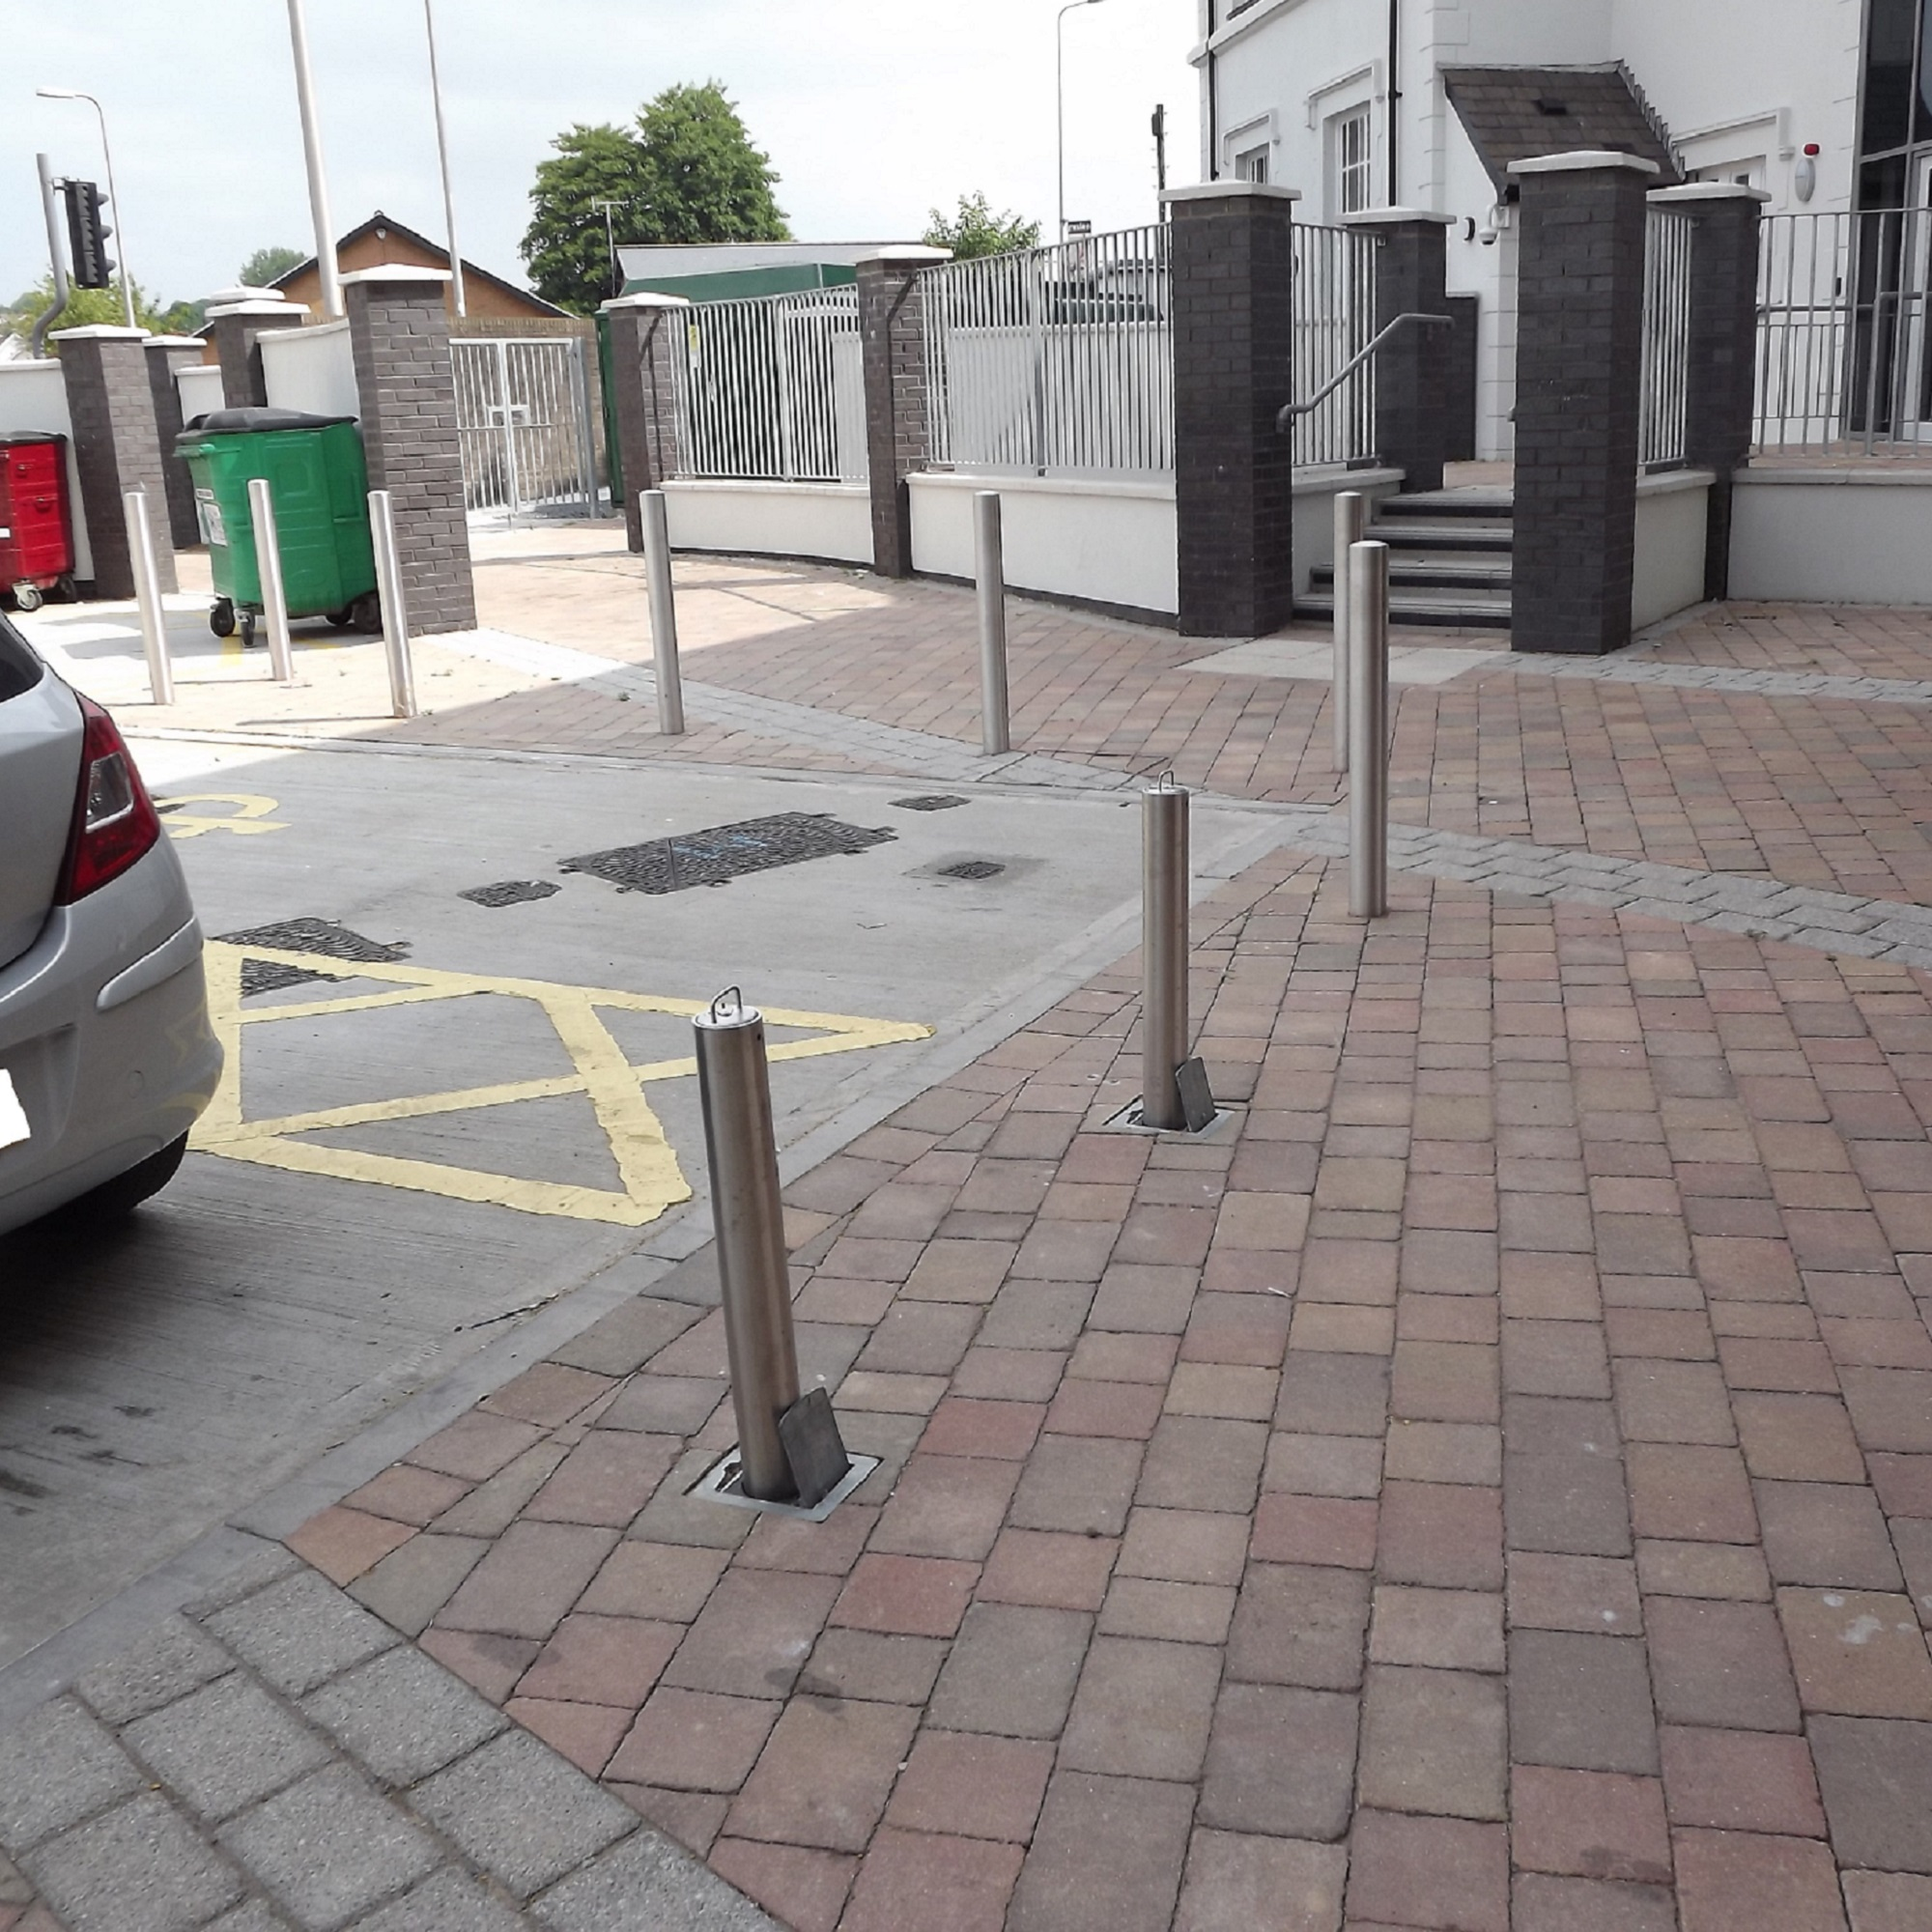 76mm Stainless Steel Telescopic Bollard